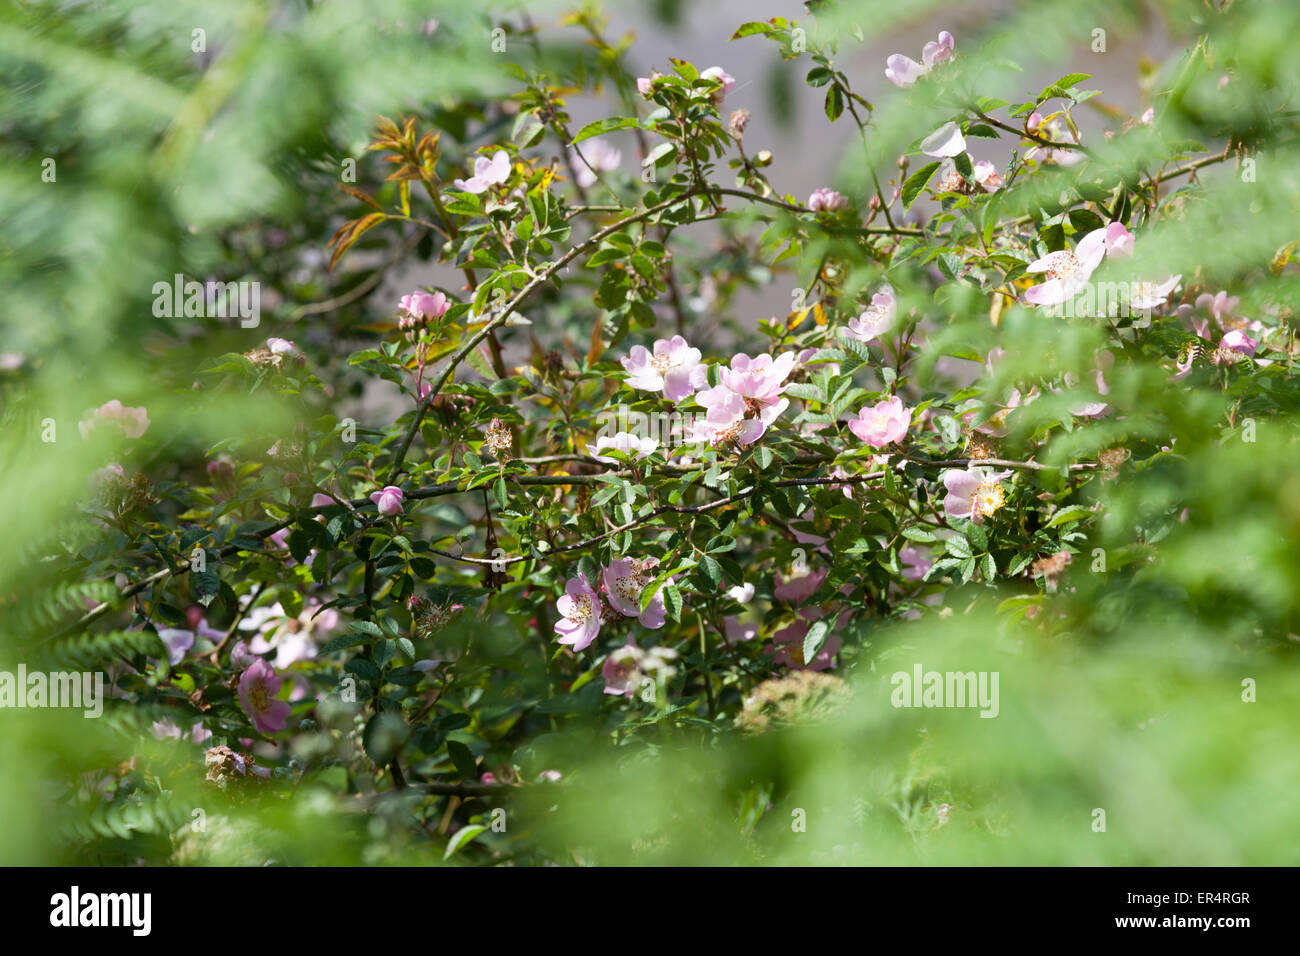 A close-up shot on branches of a blossoming dog-rose (Rosa canina), alongside the Boudigau river (Landes - France). - Stock Image